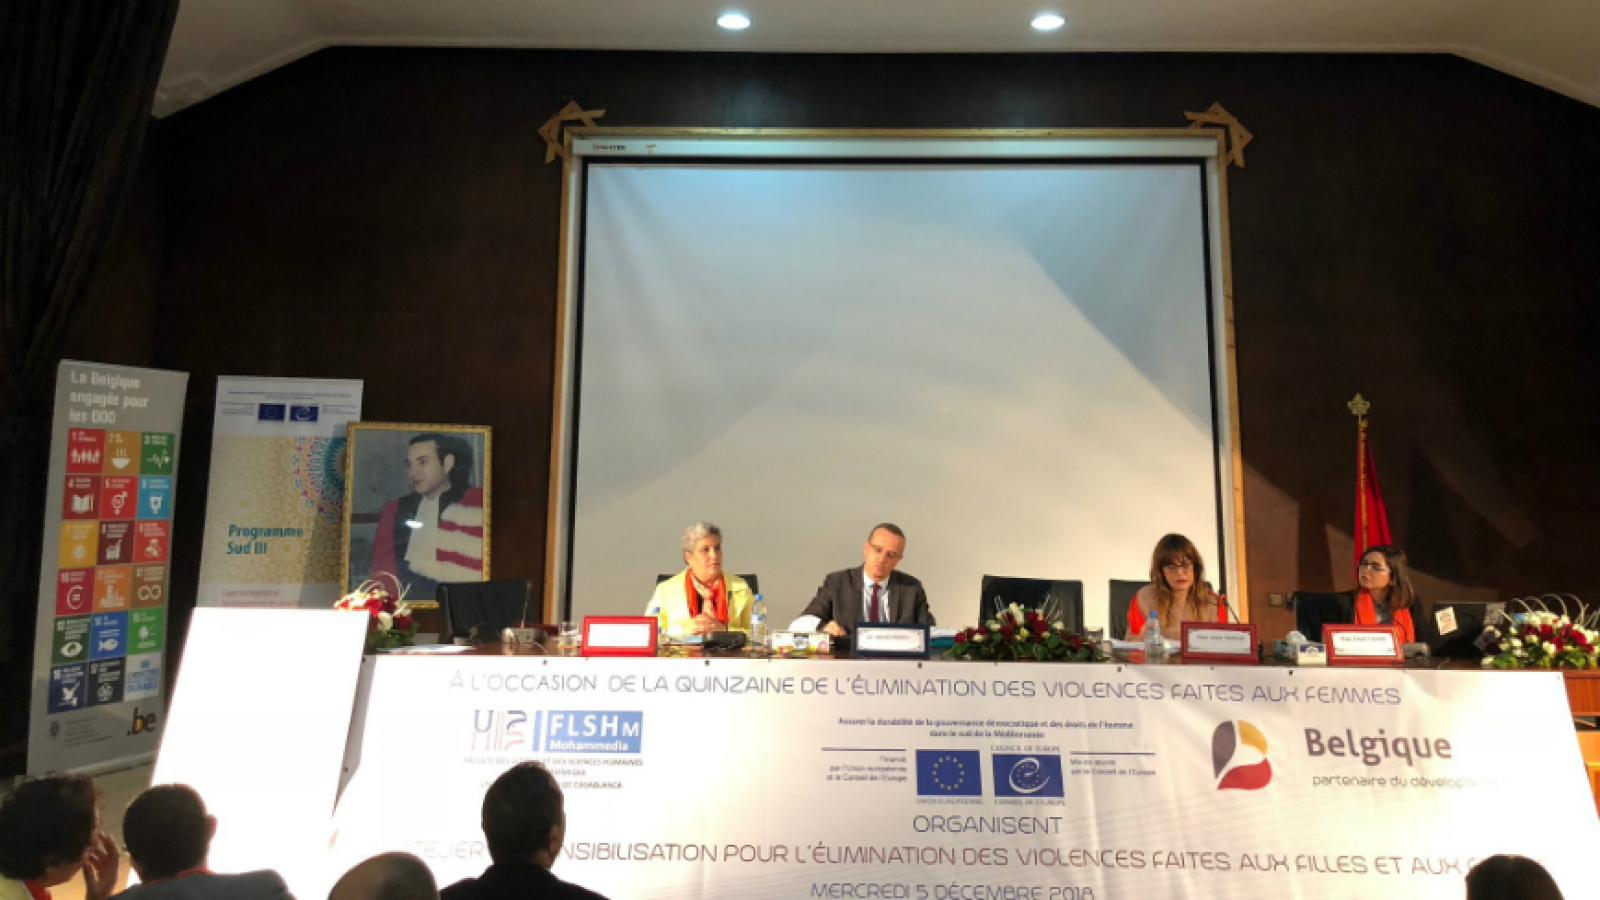 Morocco: EU-funded programme raises awareness on combating violence against women